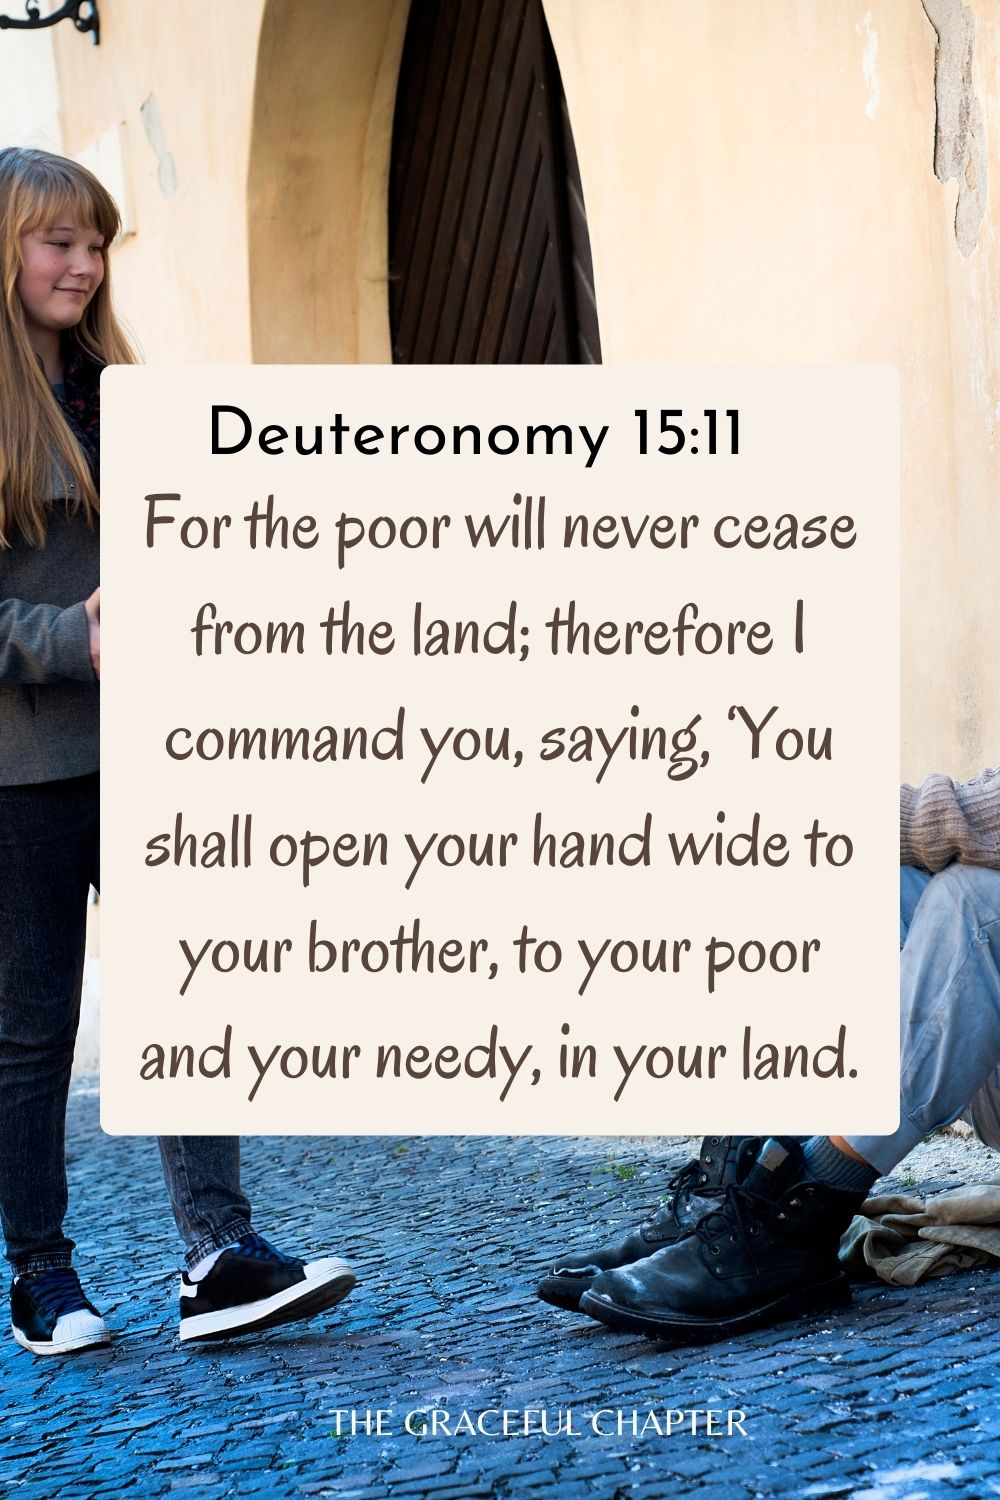 For the poor will never cease from the land; therefore I command you, saying, 'You shall open your hand wide to your brother, to your poor and your needy, in your land. Deuteronomy 15:11